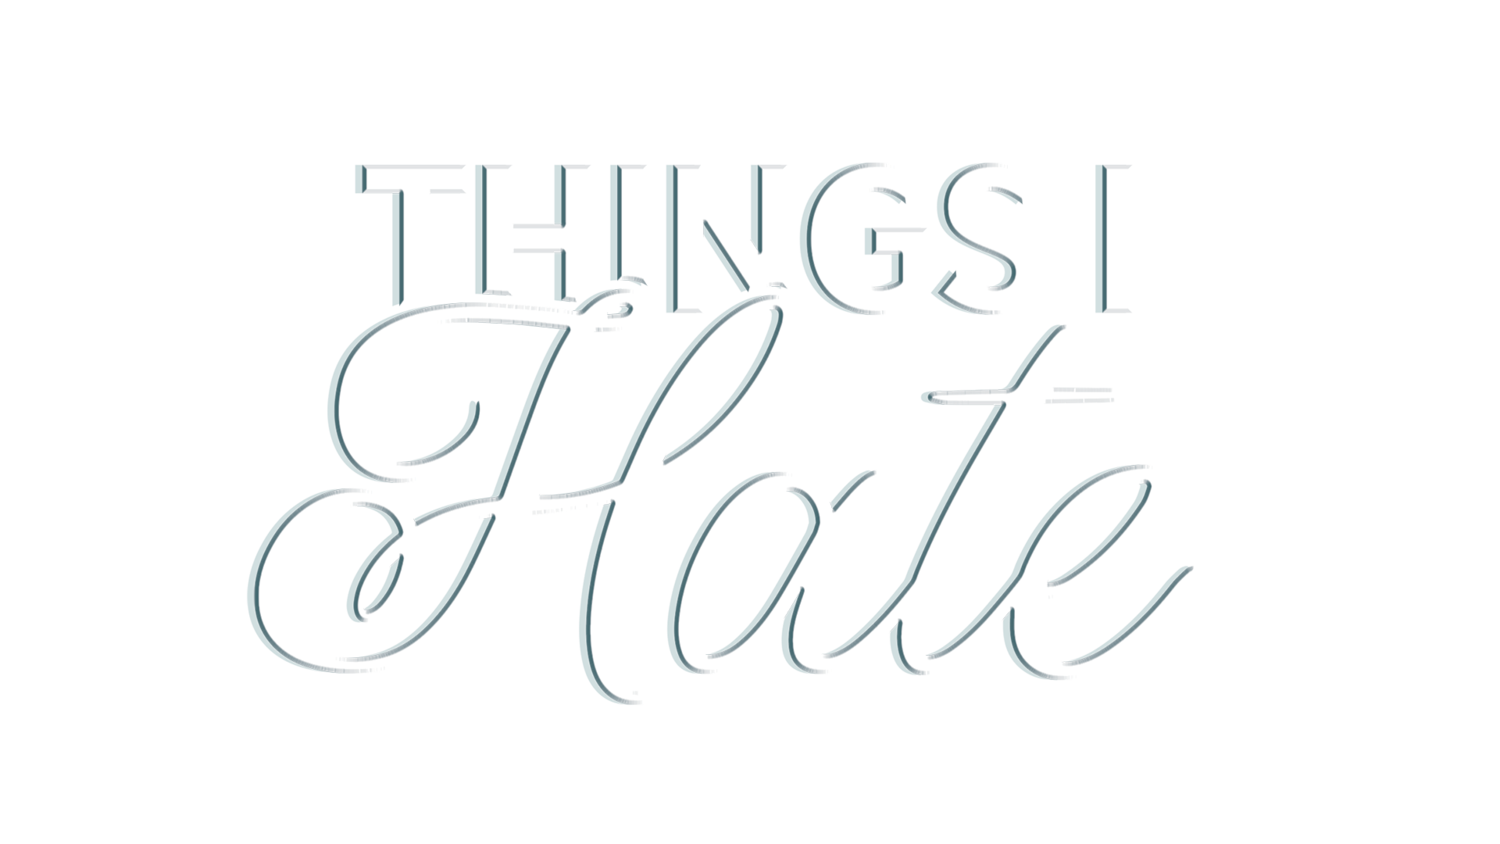 Things I Hate